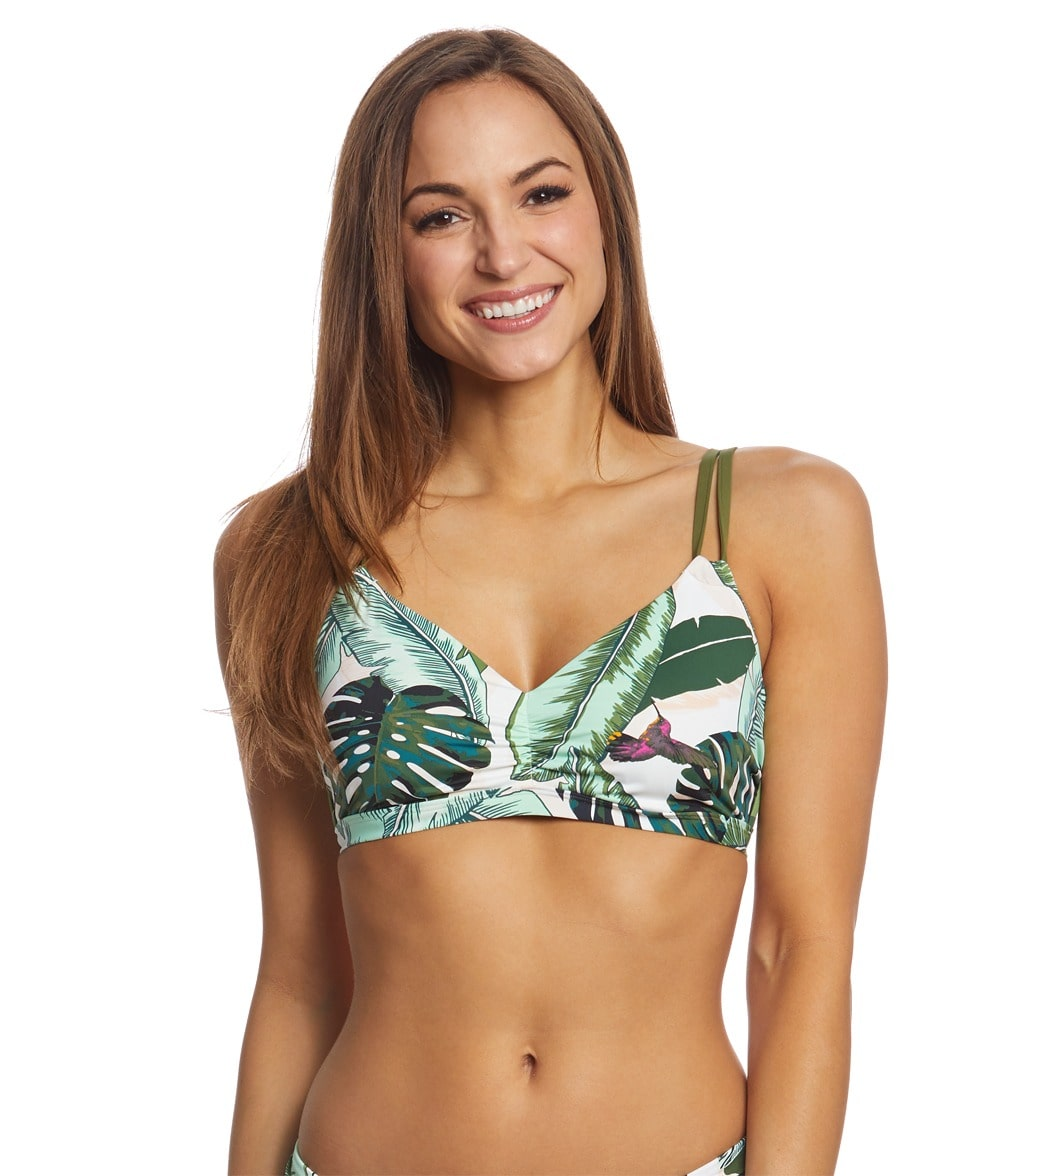 91e59c37bb Seafolly Palm Beach Sweetheart Bralette Bikini Top (DD Cup) at  SwimOutlet.com - Free Shipping